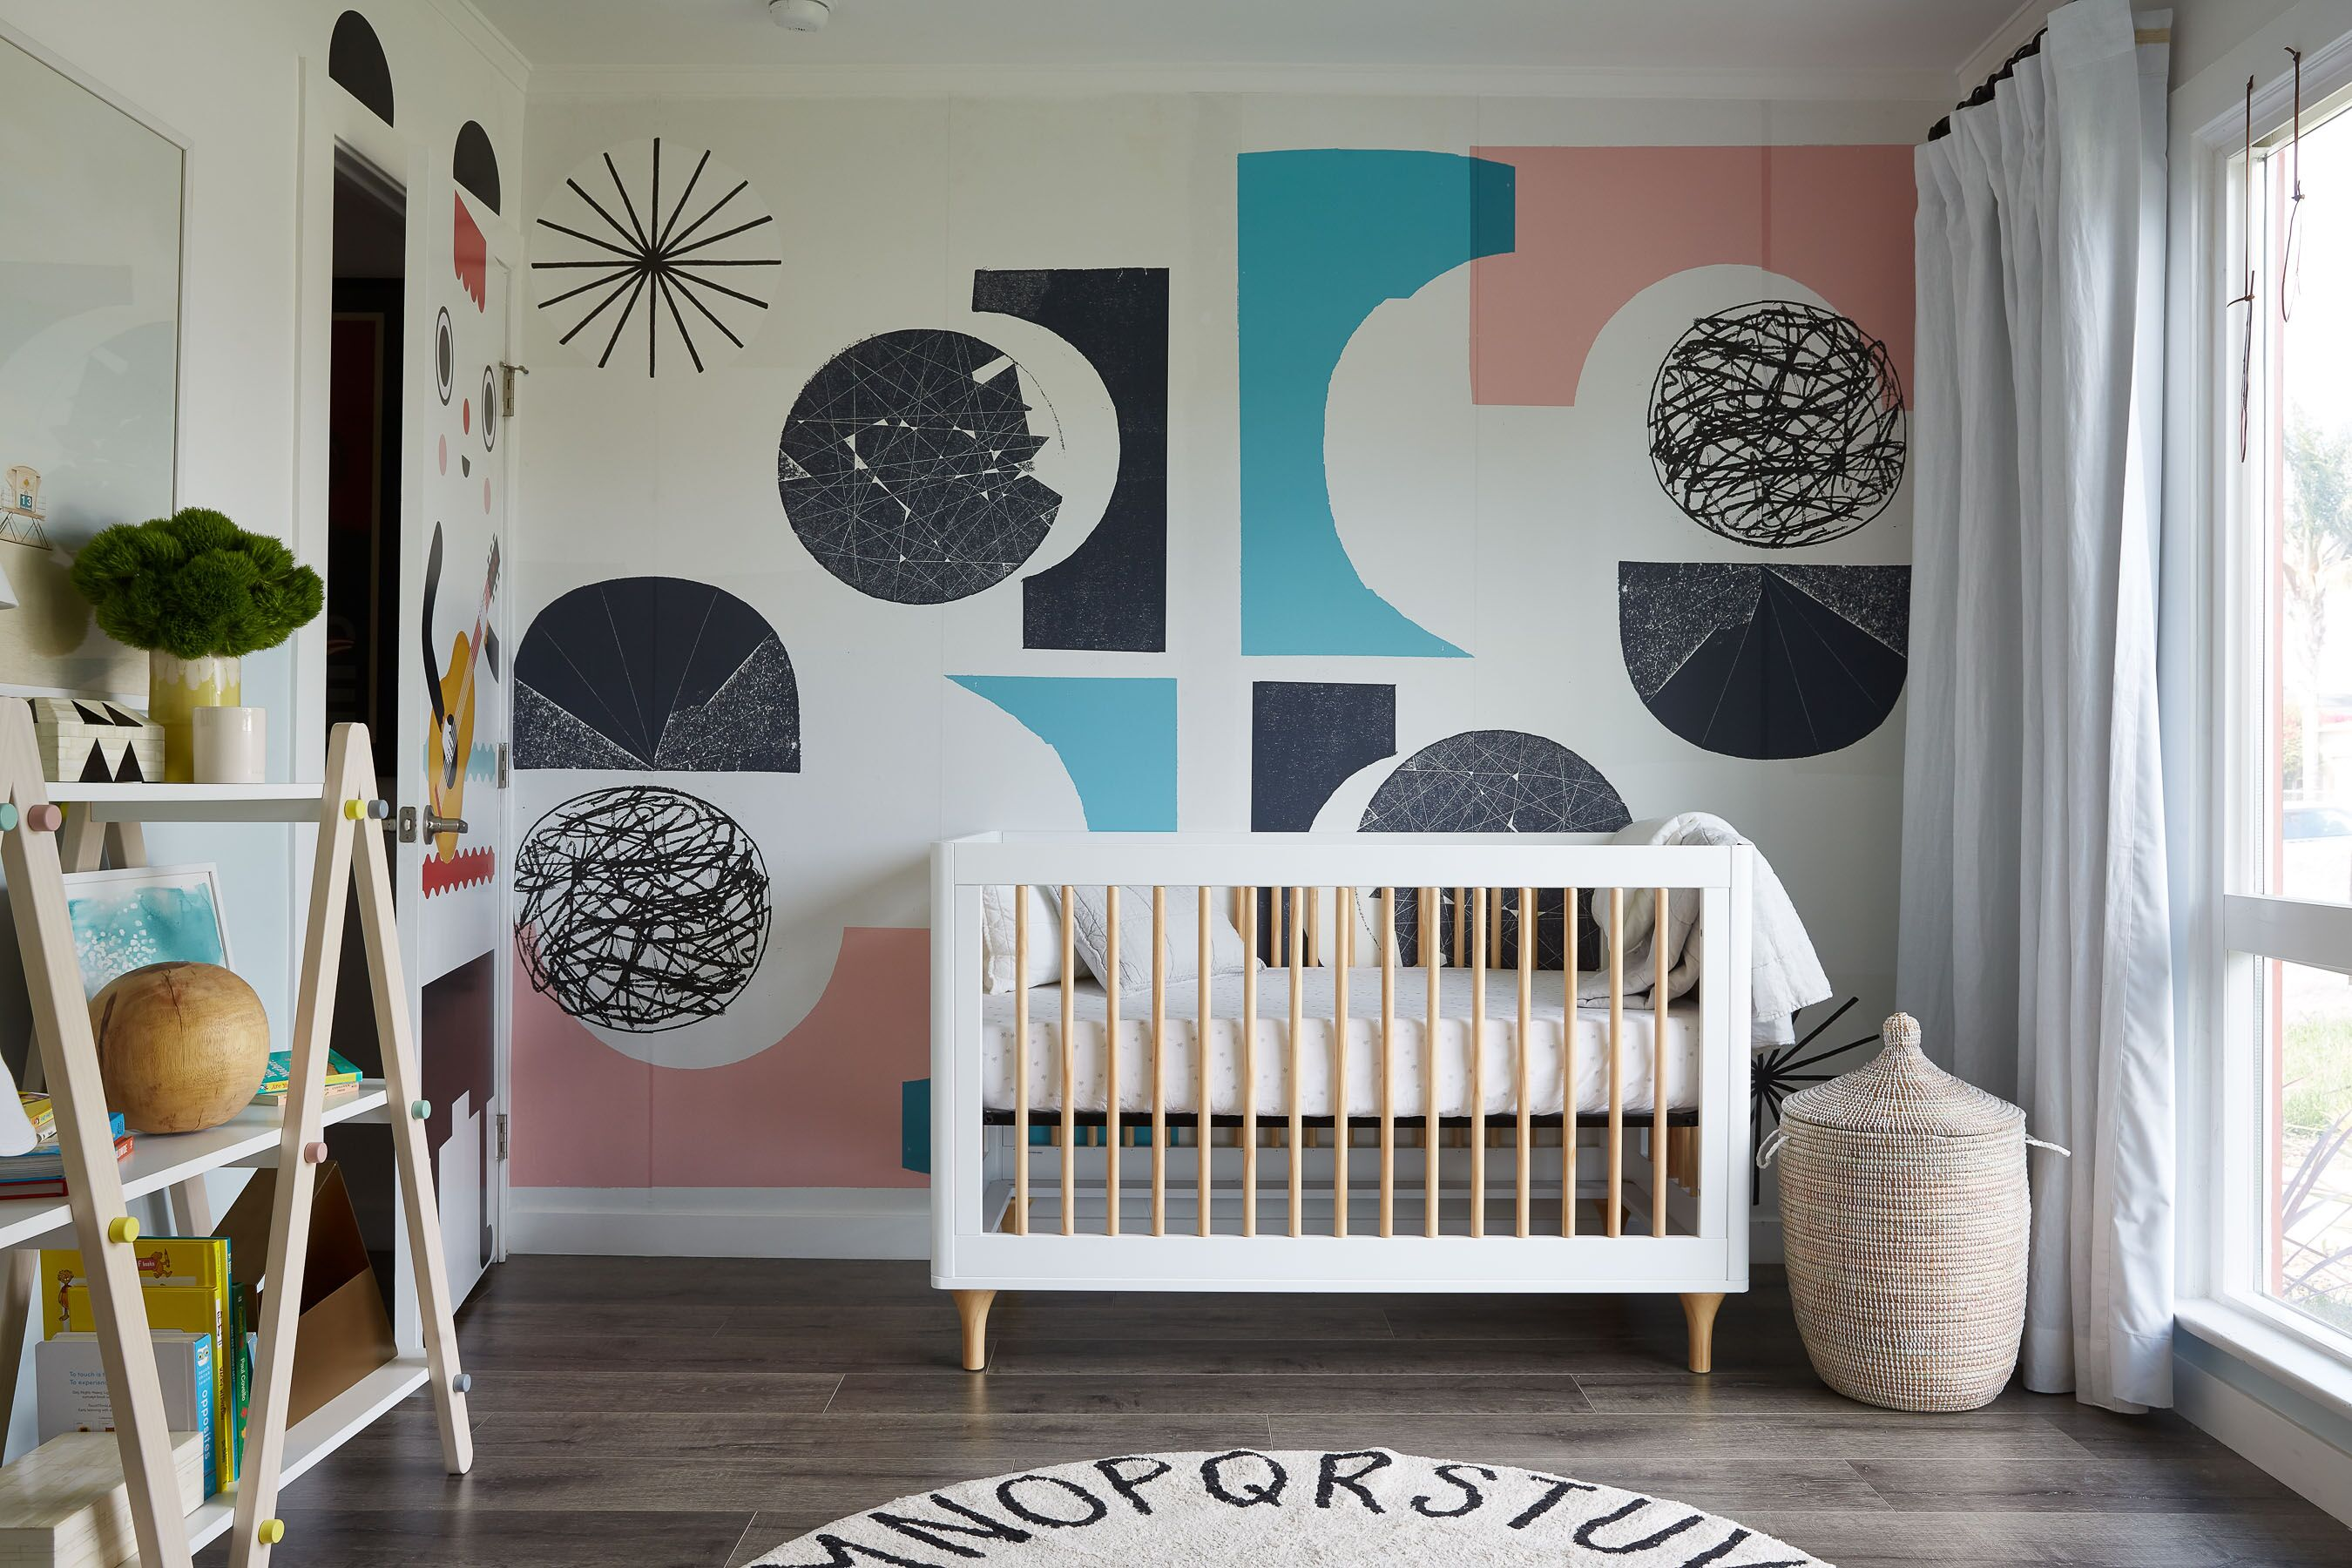 A Modern and Playful Nursery Transformation